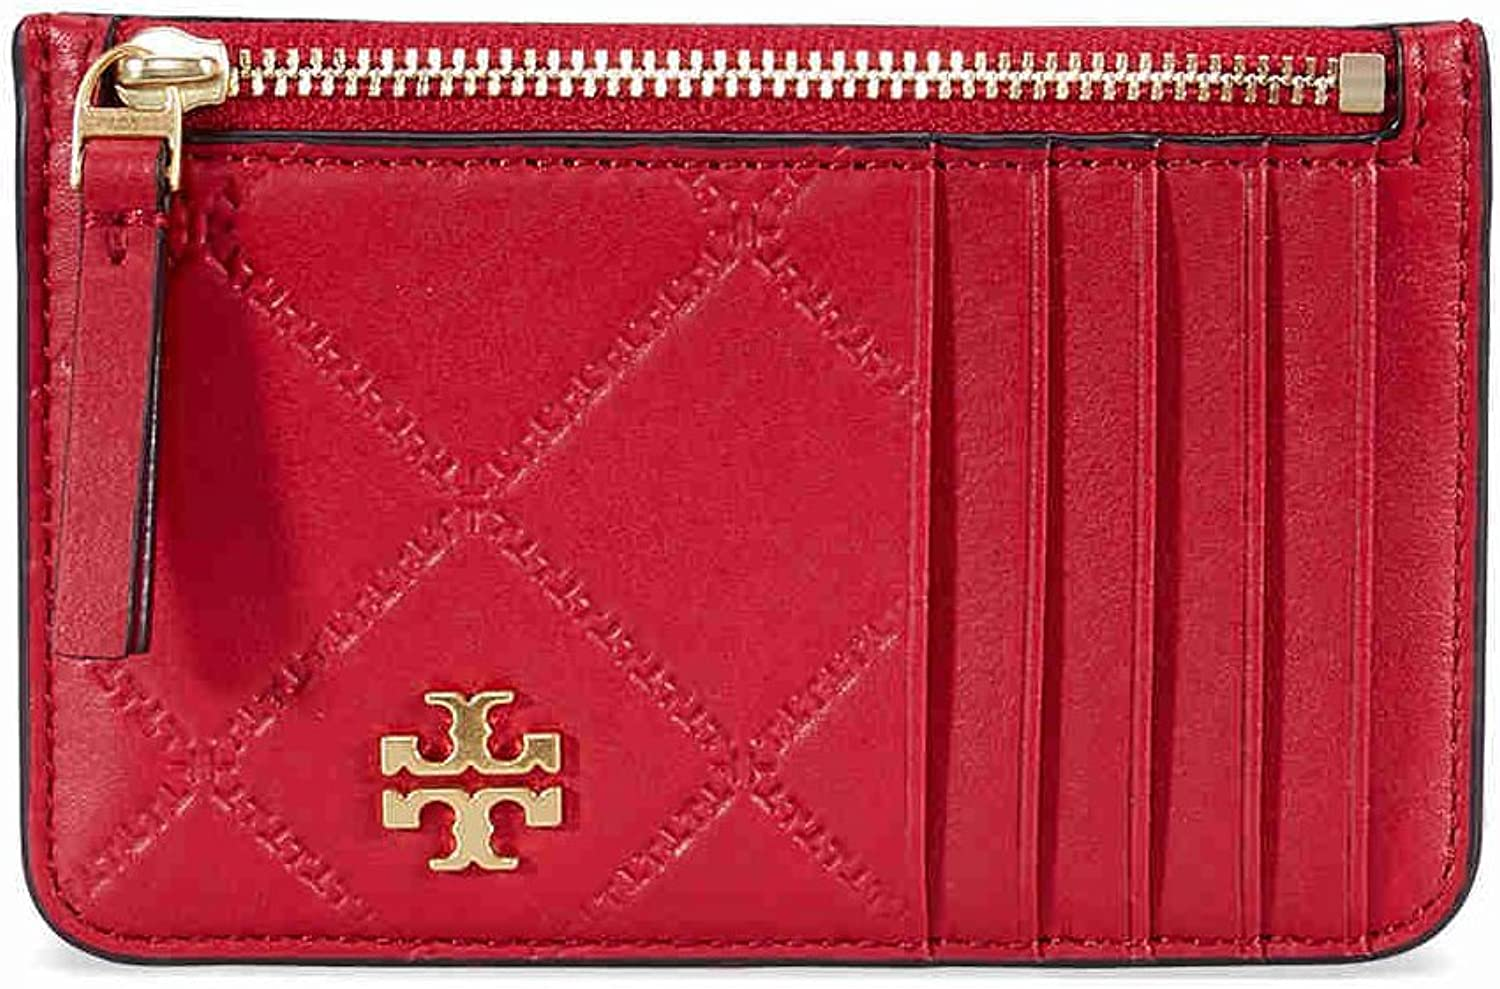 Tory Burch Georgia Quilted Zip Card Case in Liberty Red